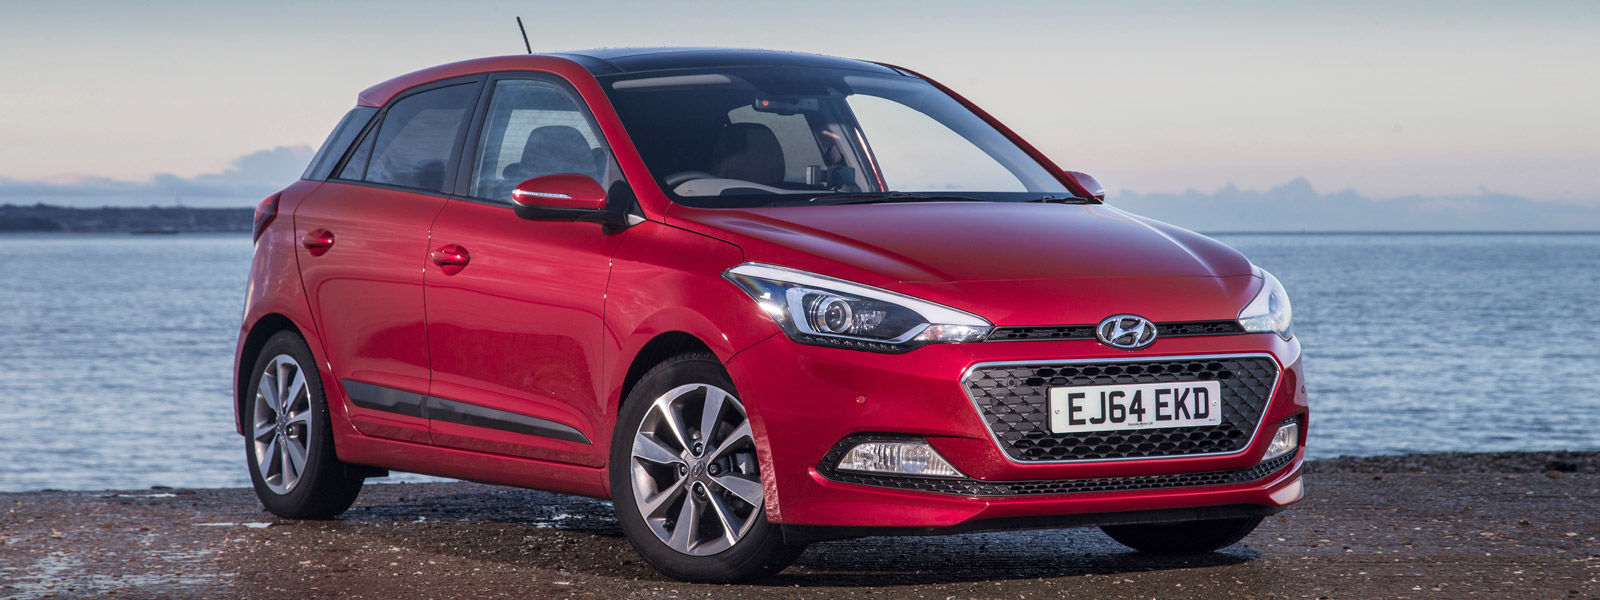 The 10 best safe small cars using Euro NCAP data | carwow